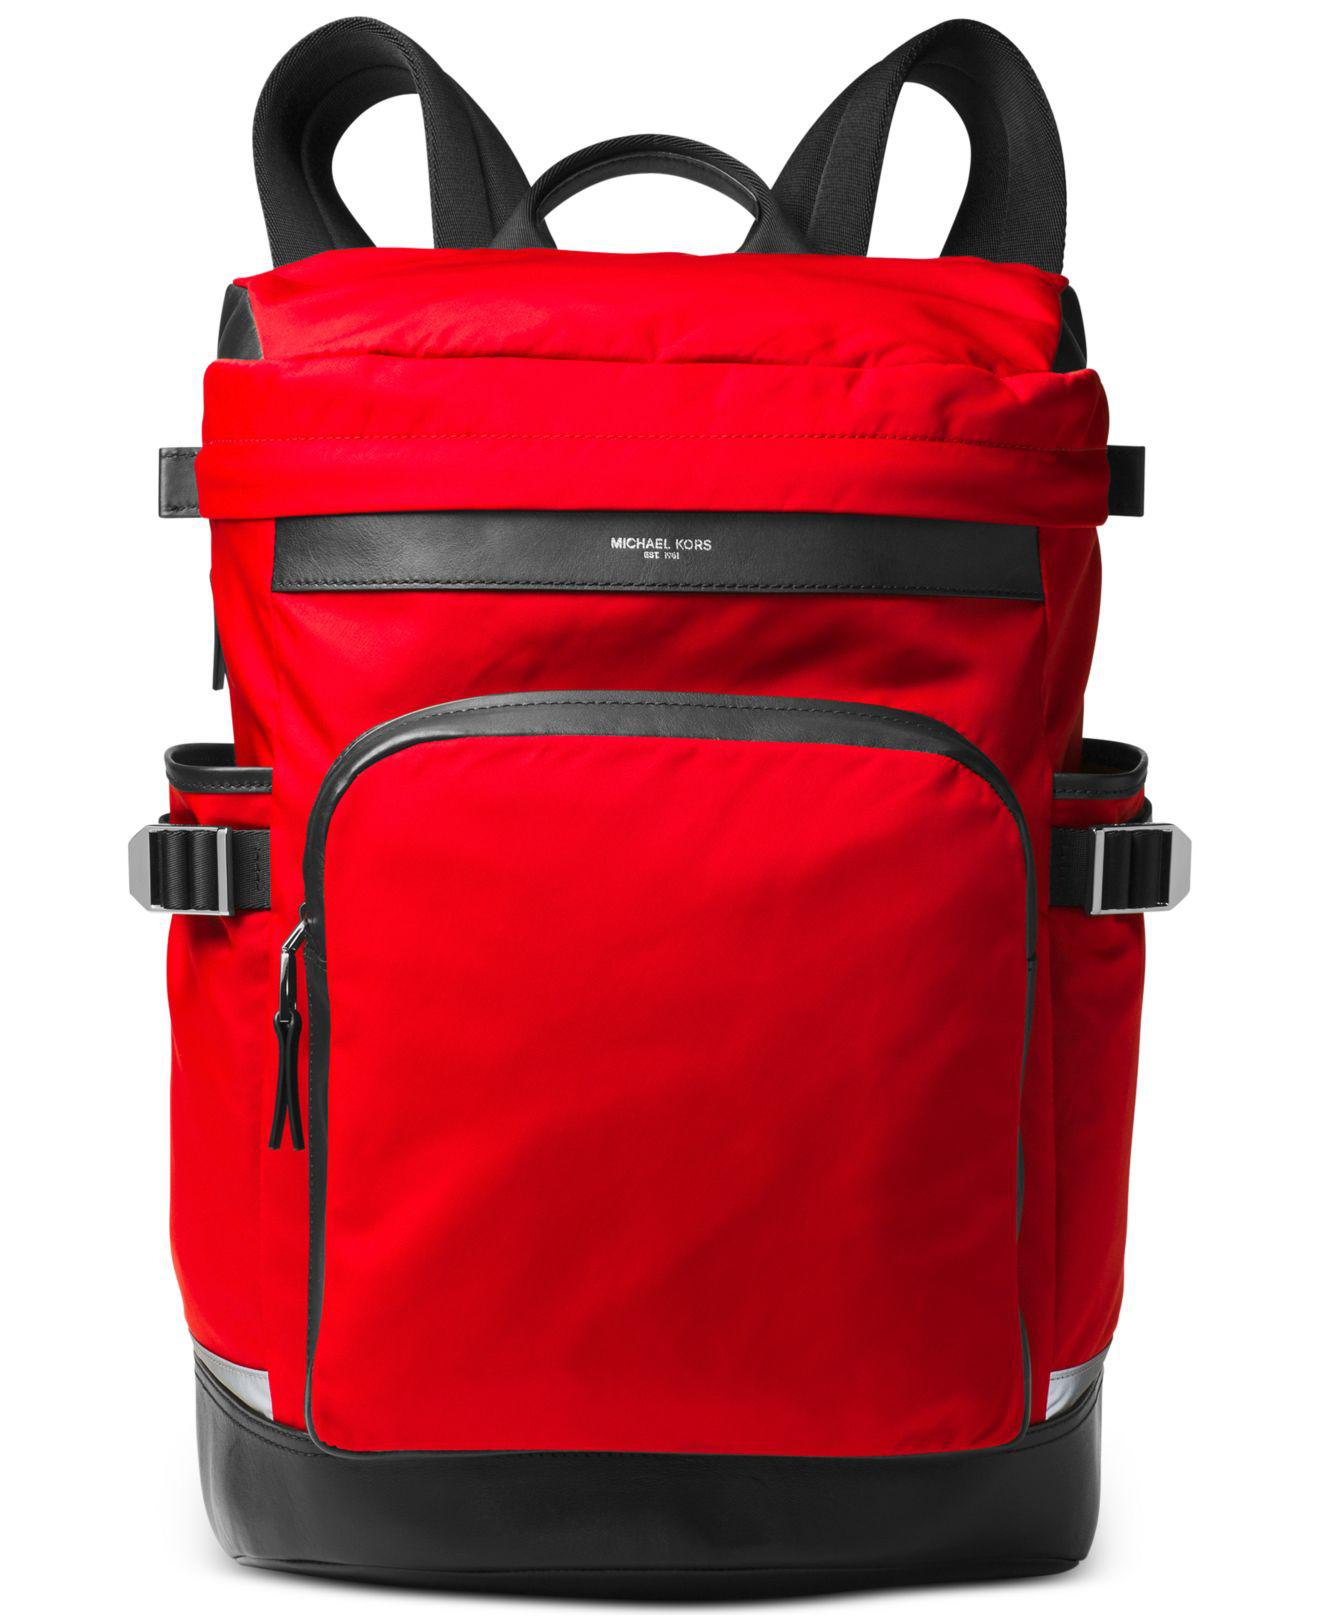 77e7ce1b9f0a Michael Kors Men s Kent Cycling Backpack in Red for Men - Lyst